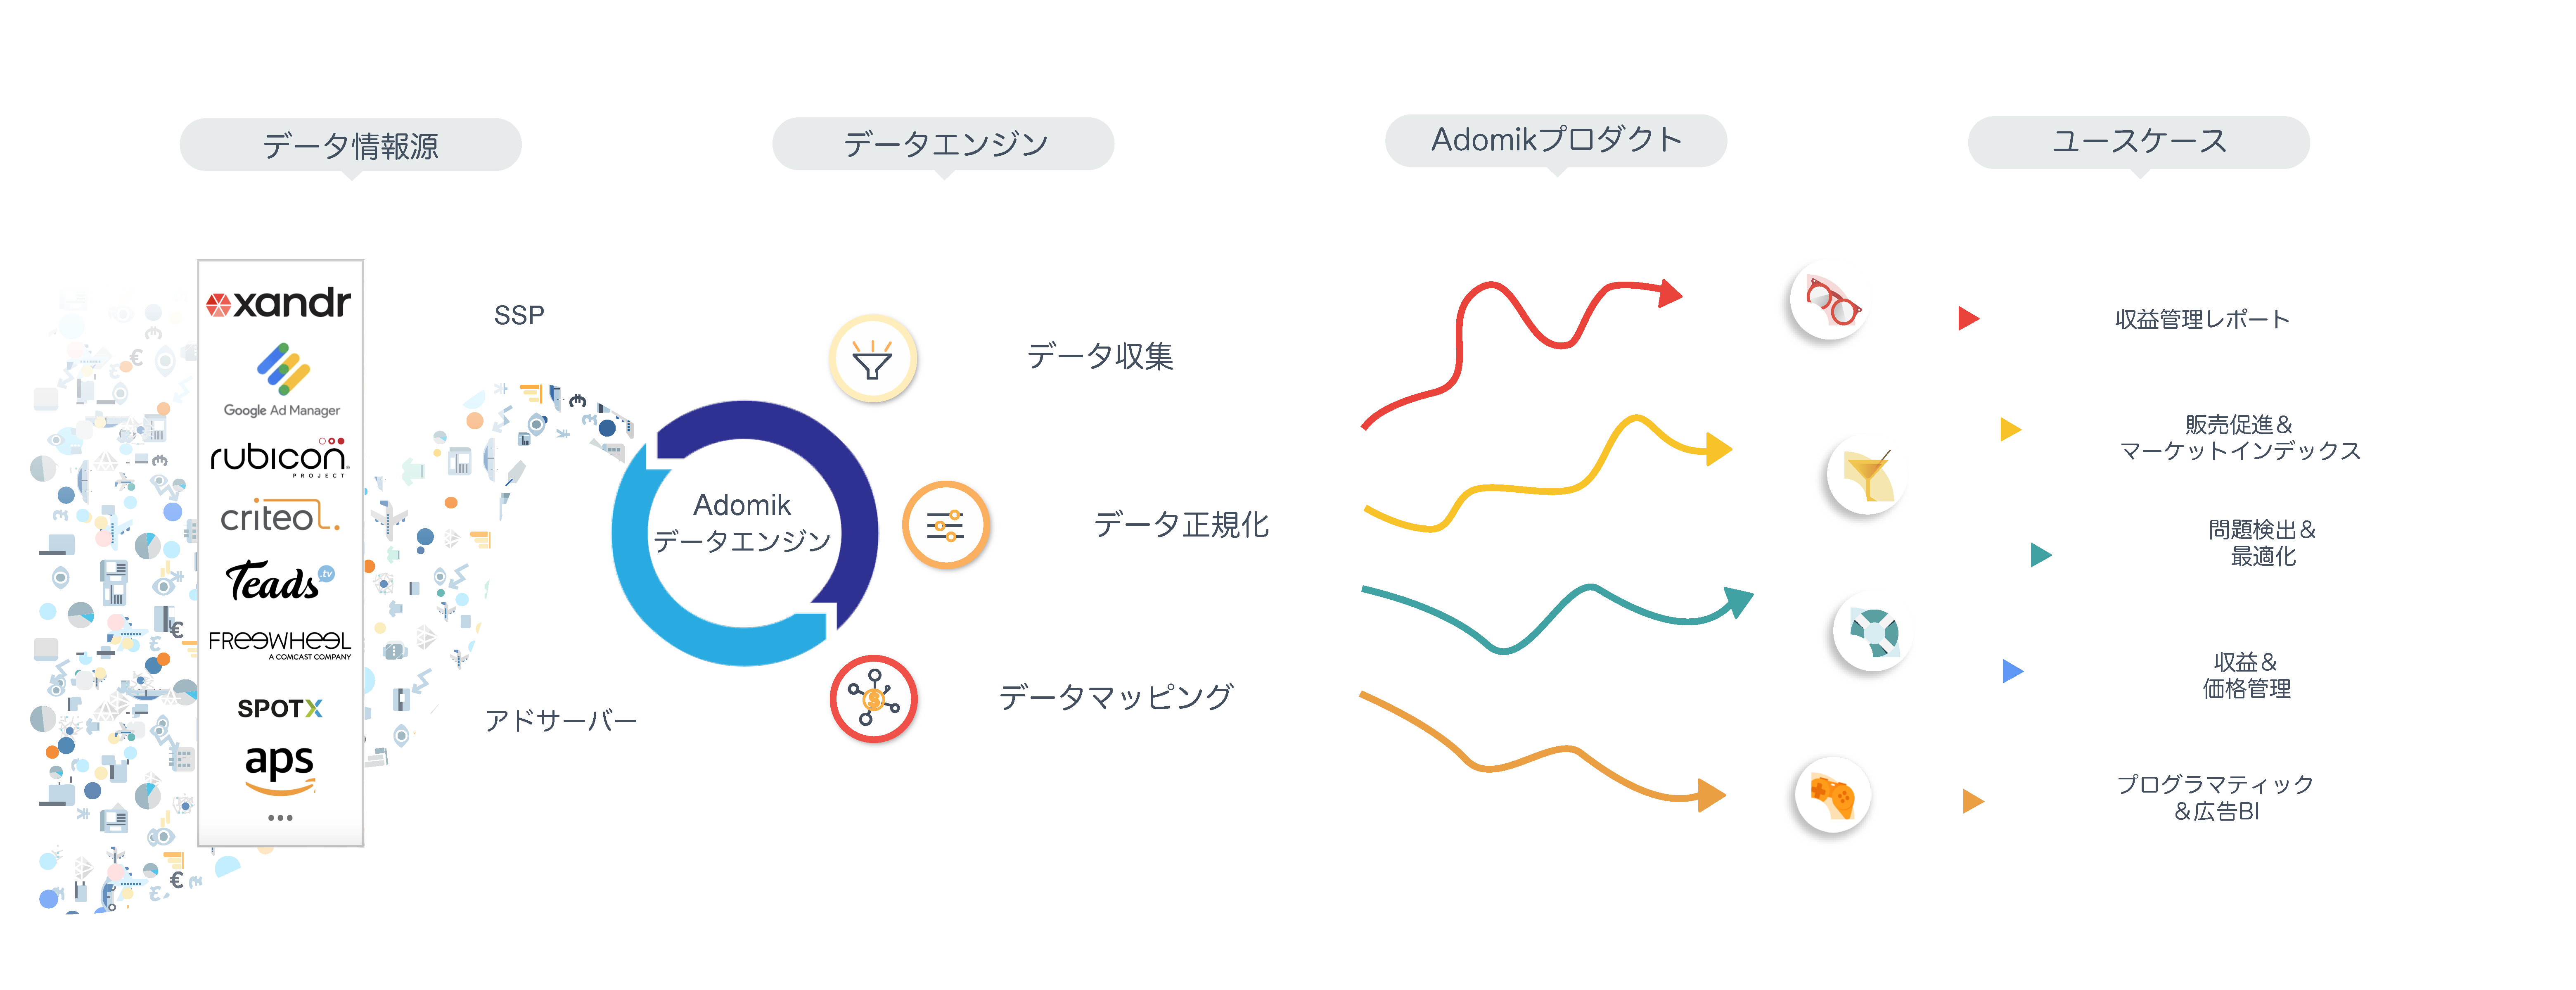 JP Data Engine Apps & use case Aug 2020